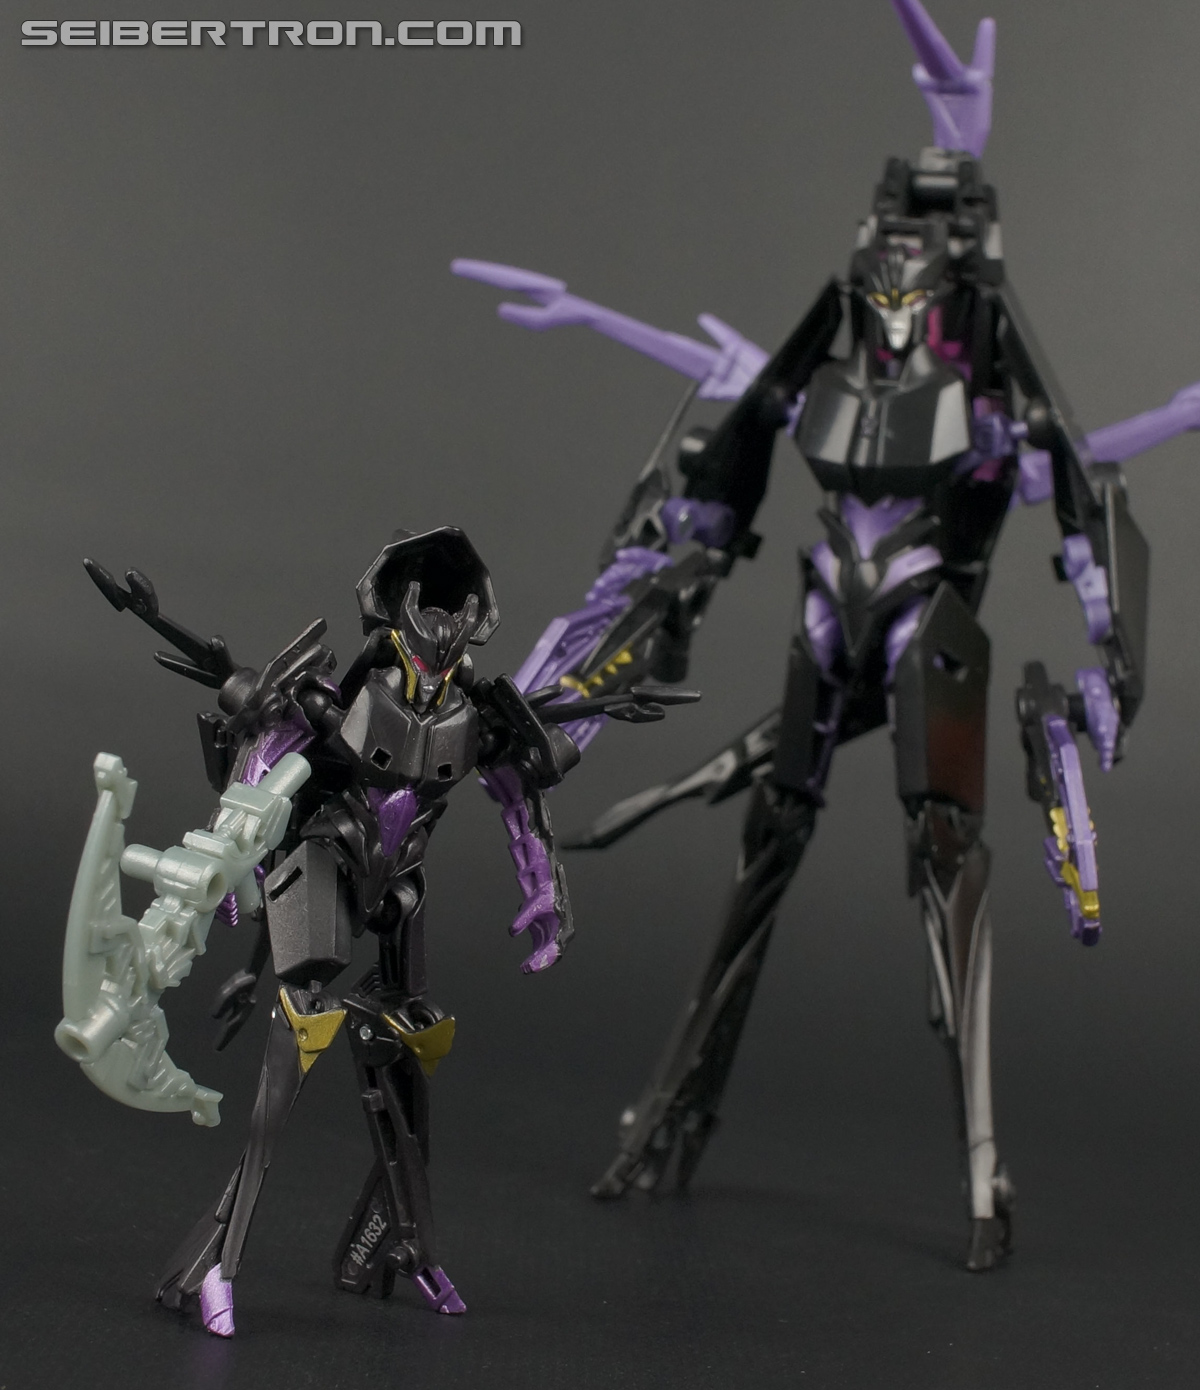 Transformers Prime Beast Hunters Cyberverse Airachnid (Image #82 of 93)